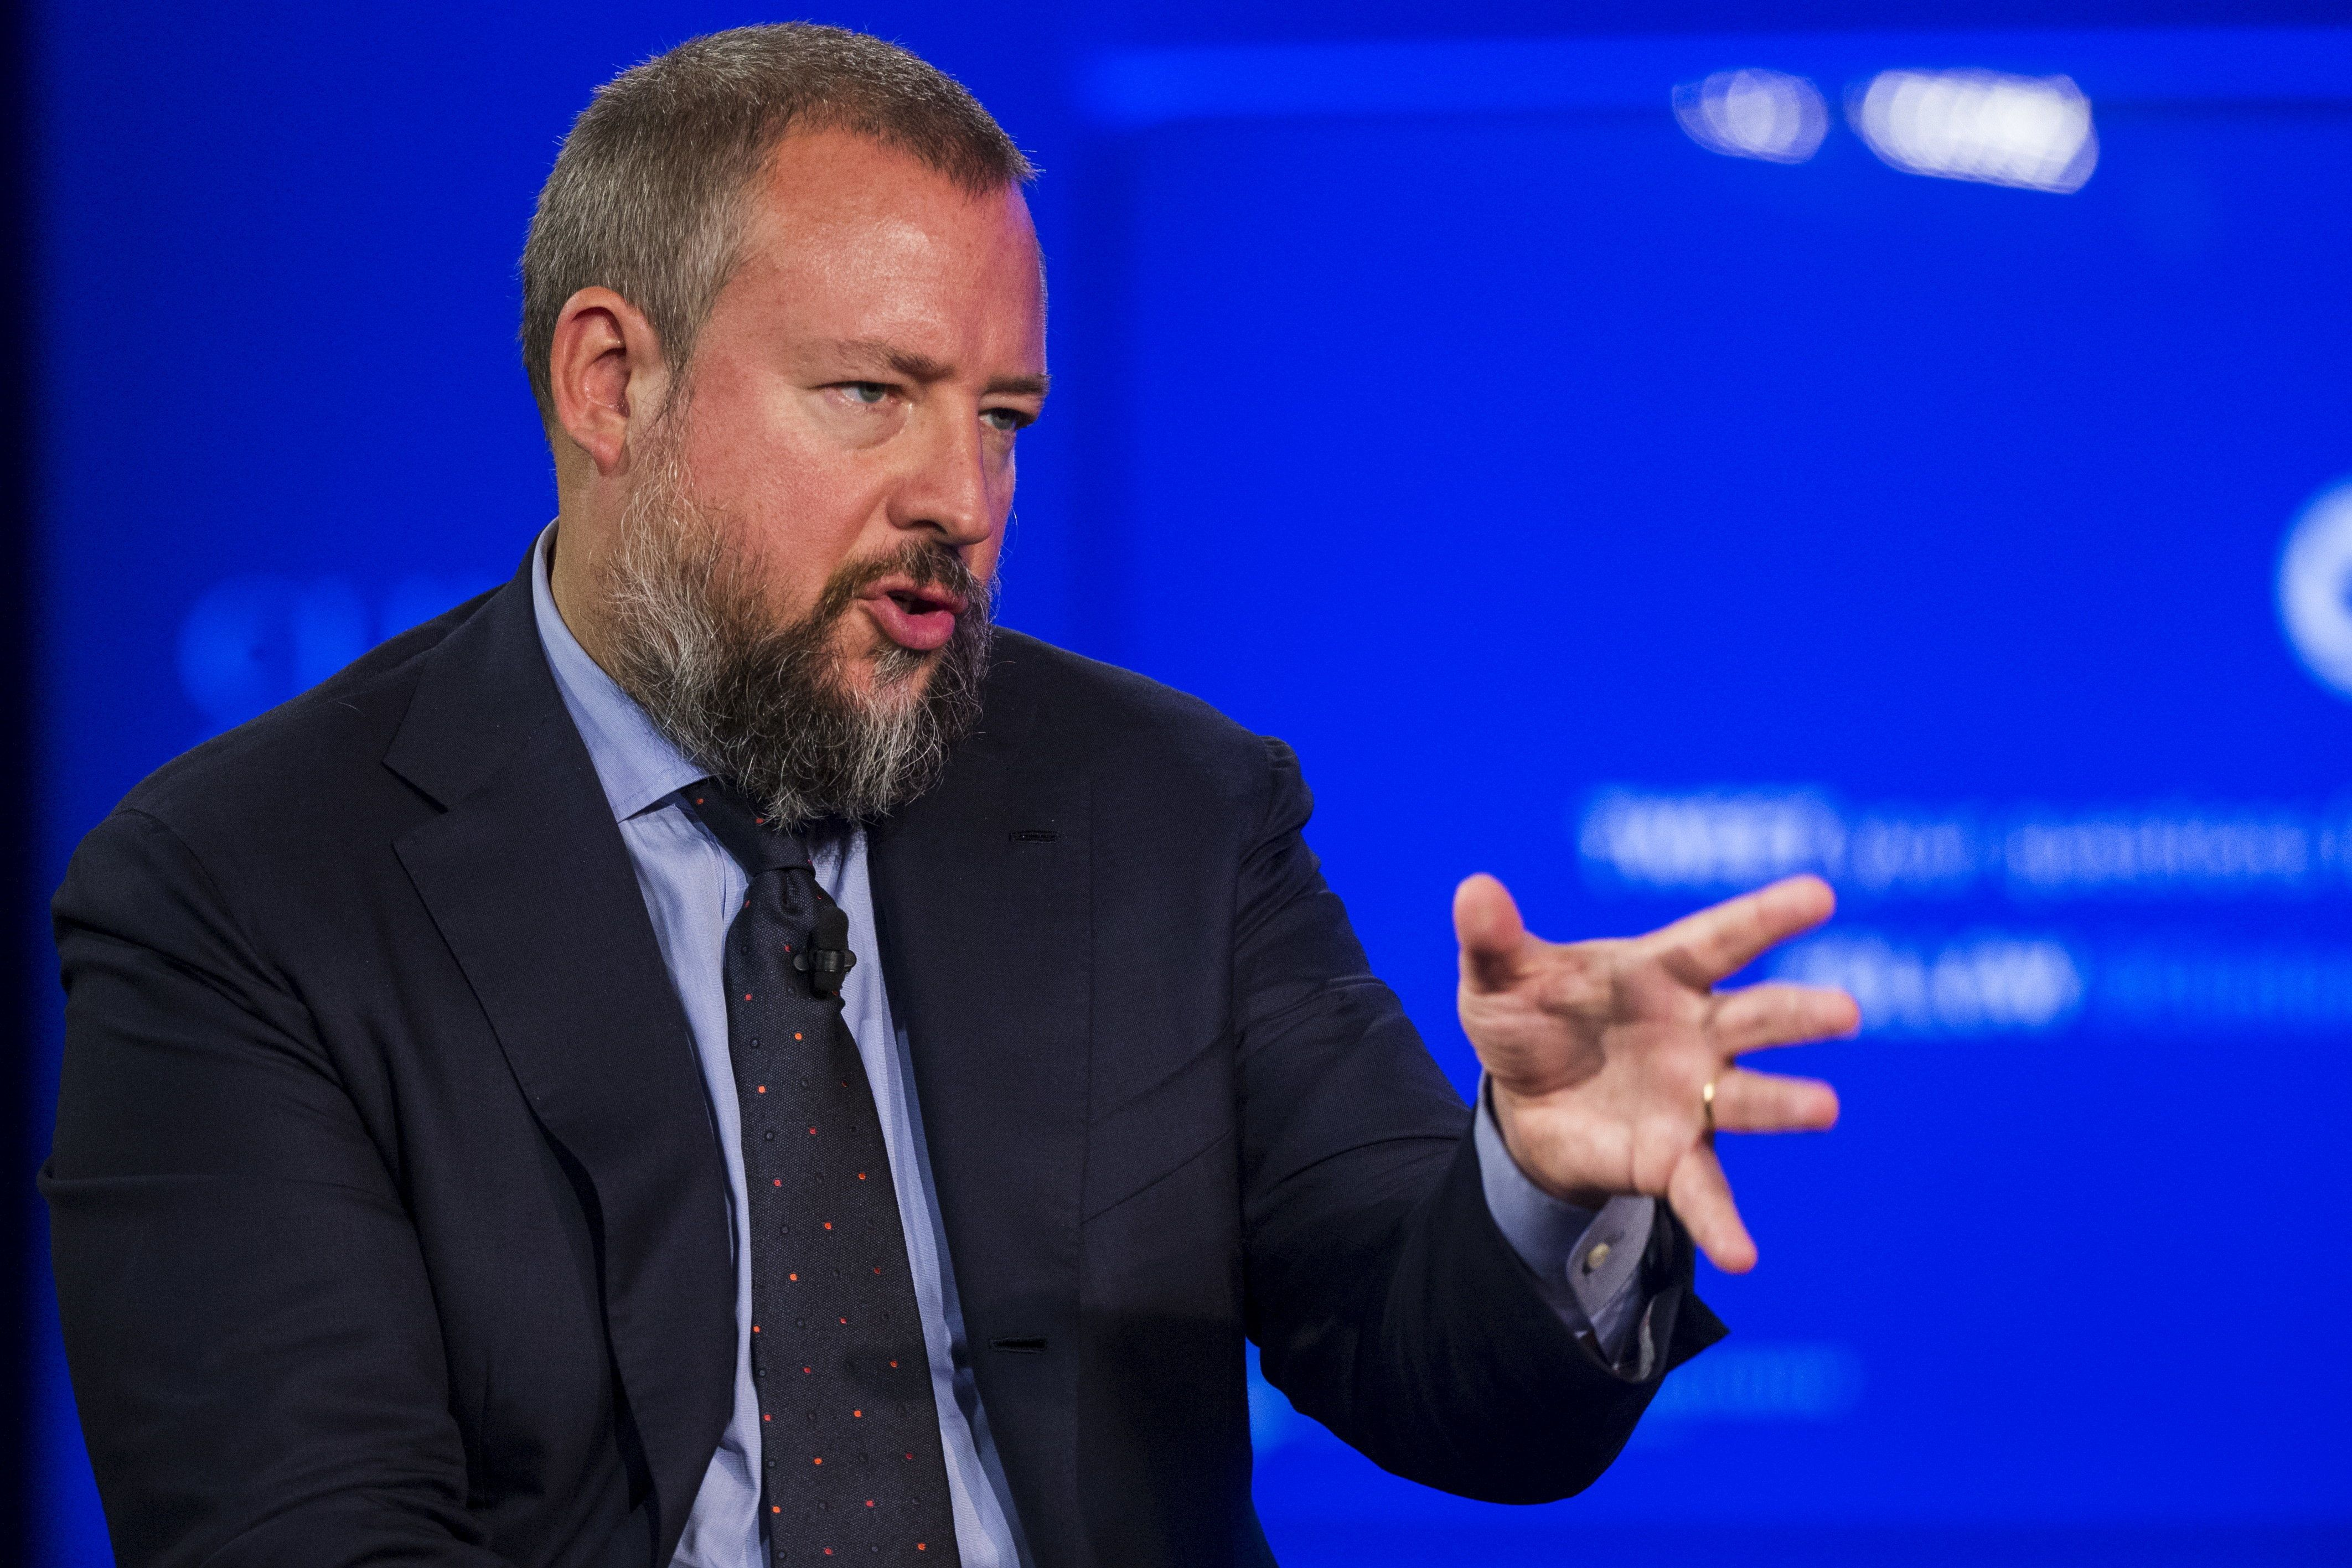 Shane Smith,co-founder and CEO of Vice Media, has acknowledged the company has failed to